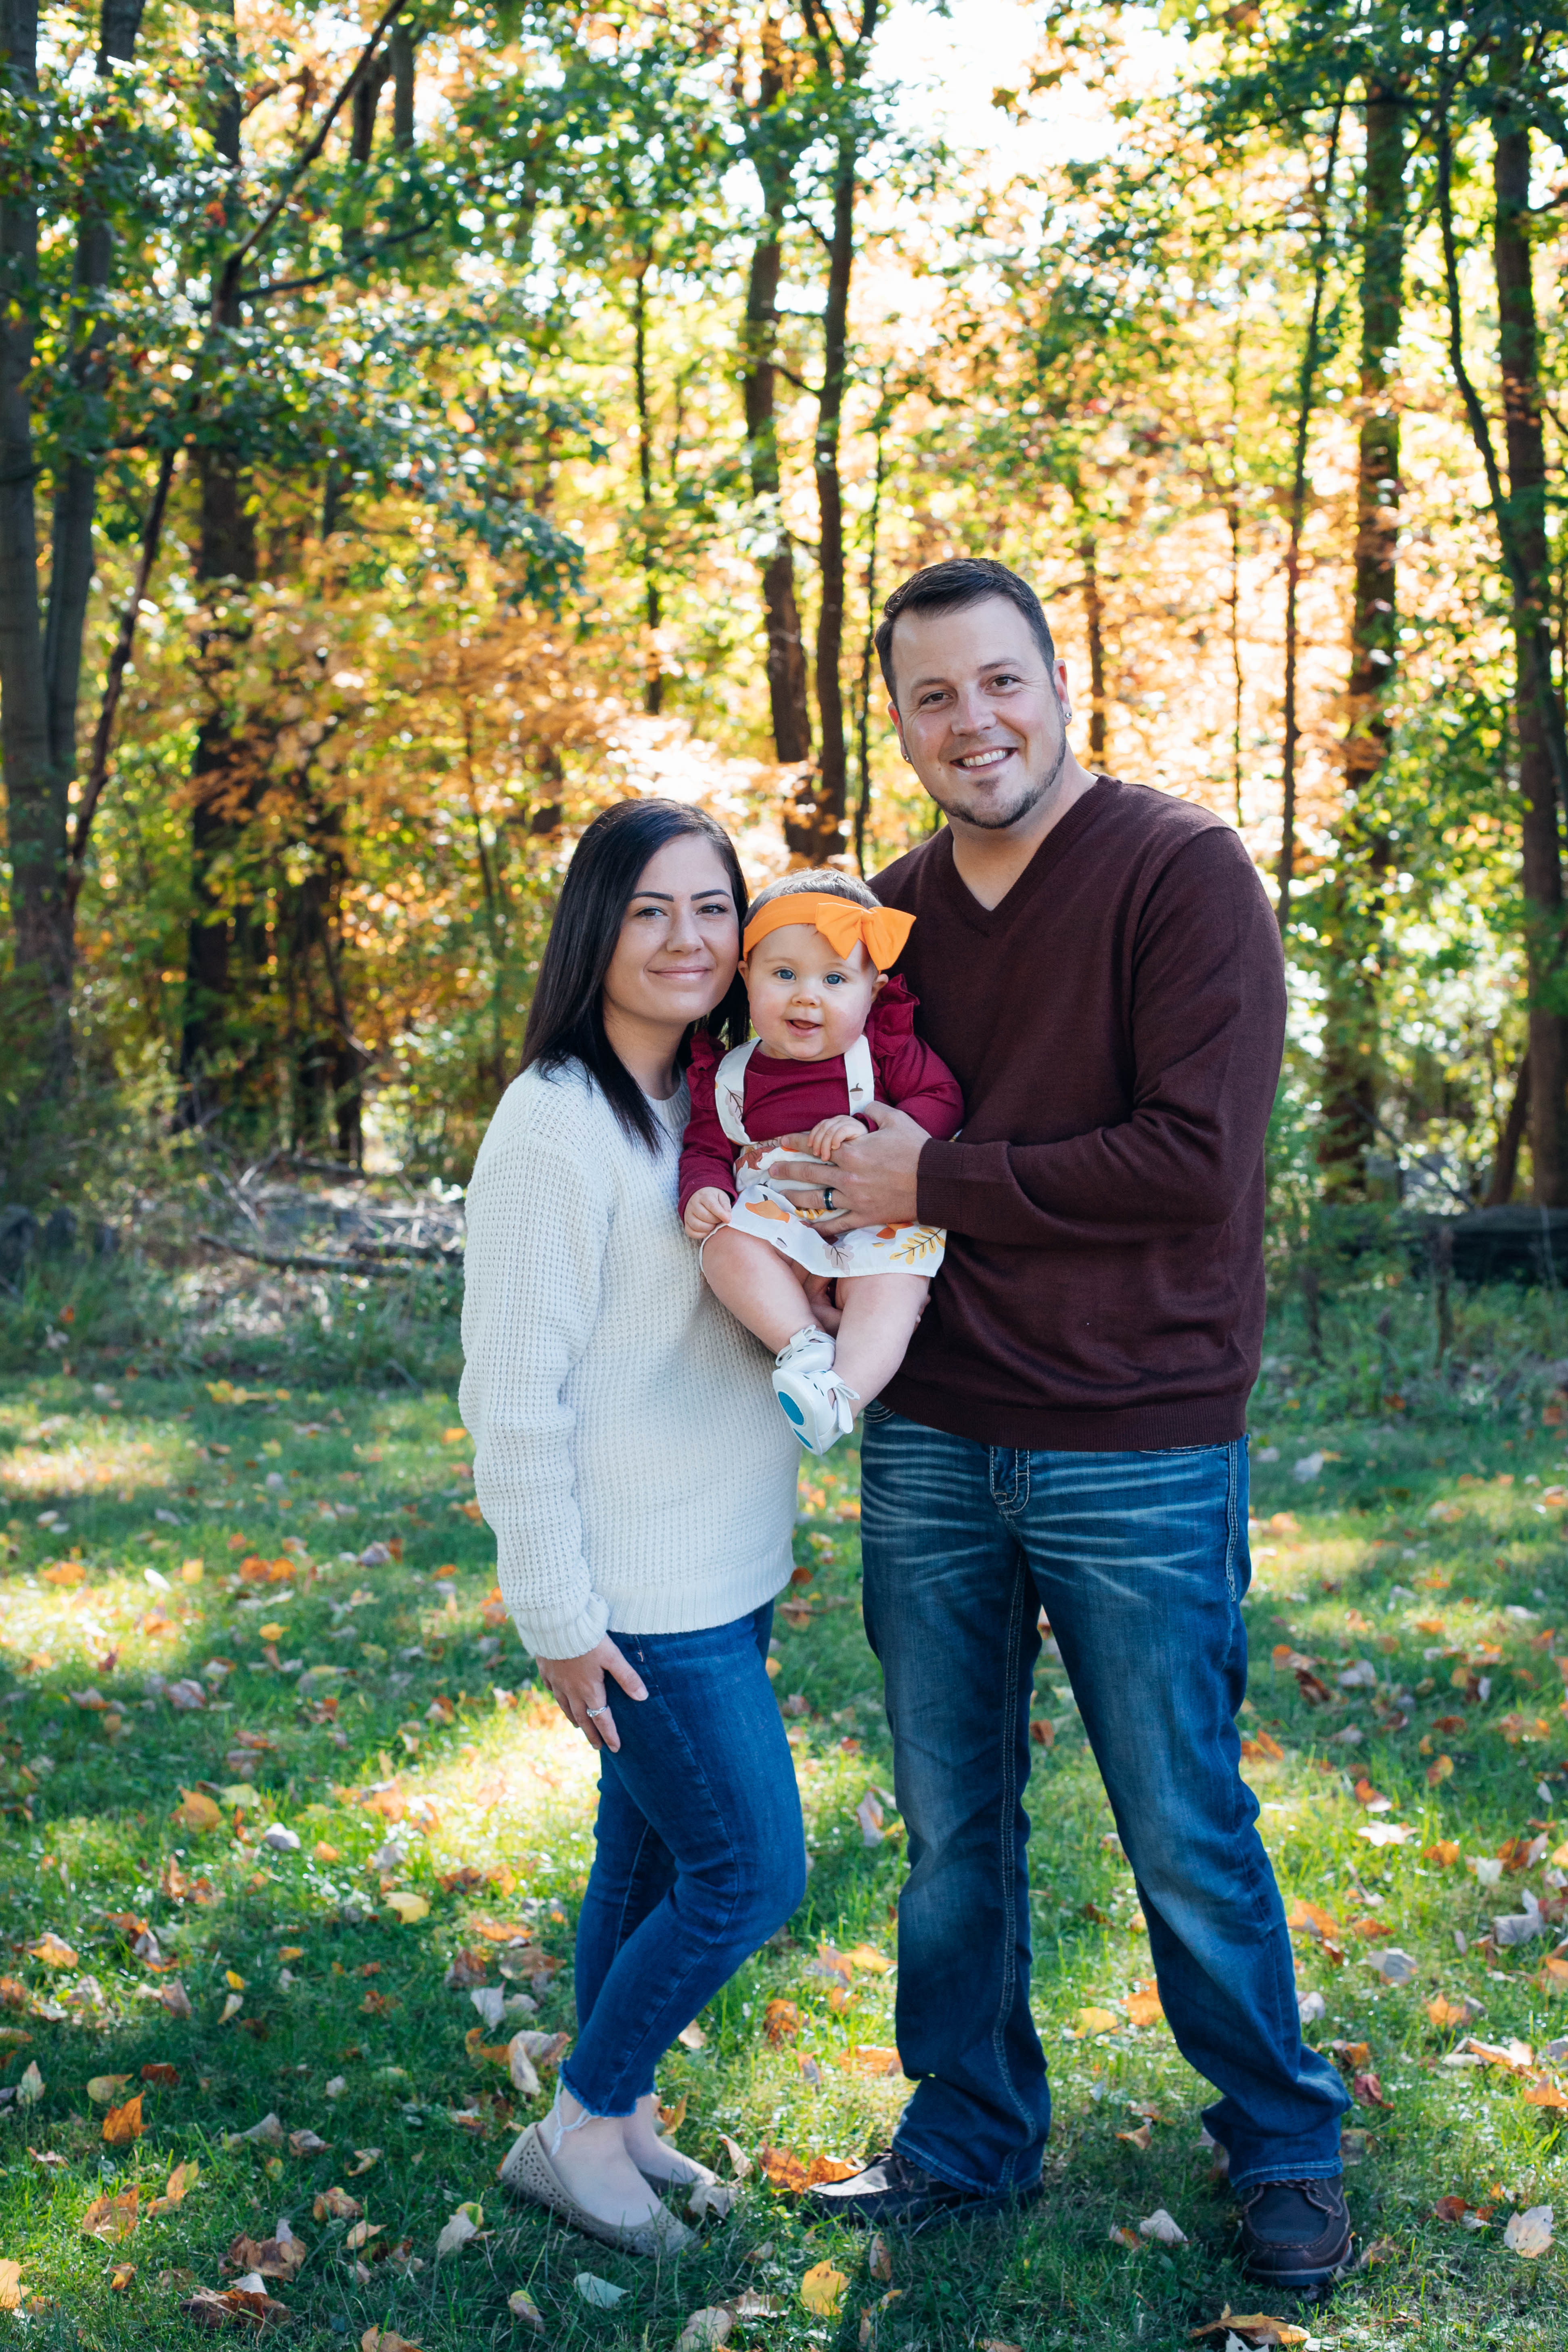 30 minute Kids/Family Session